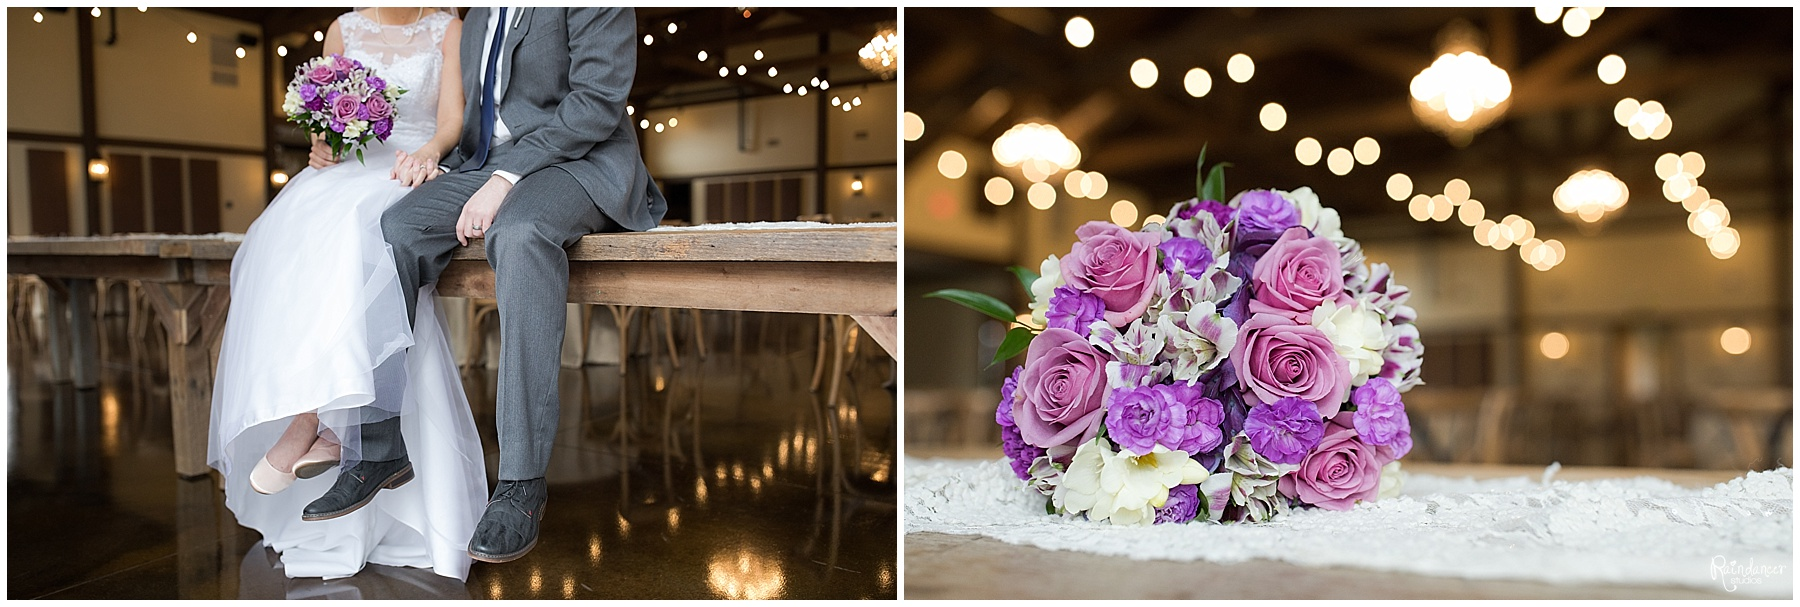 Bride and groom sitting together on table by Raindancer Studios Indianapolis Wedding photographer Jill Howell